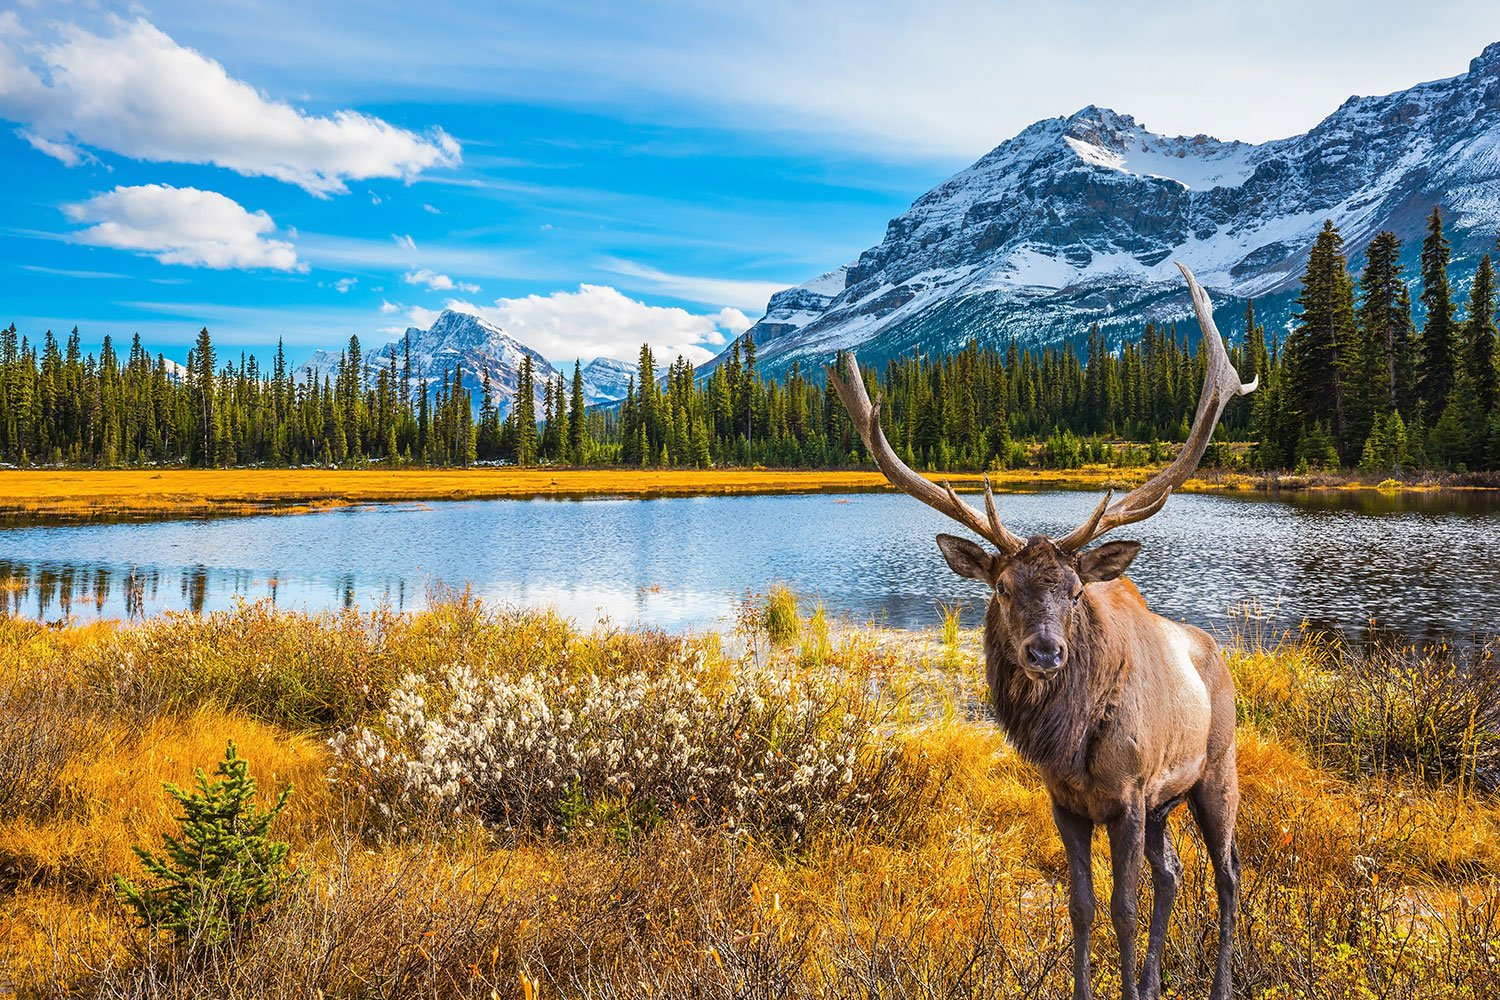 Deer with branched antlers stands near a lake in Canada